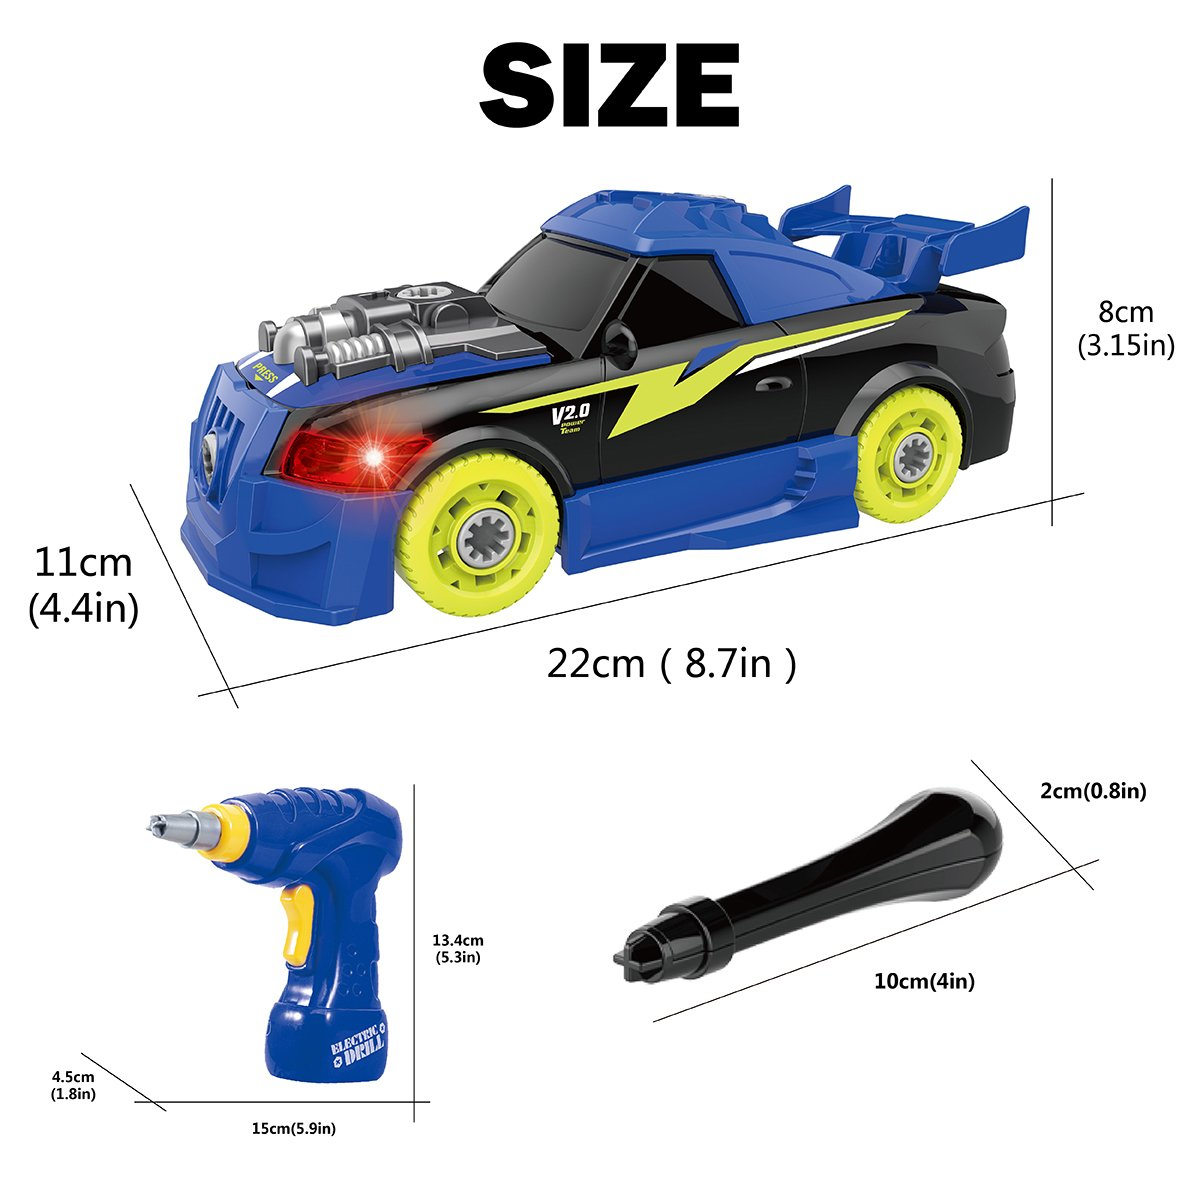 Maxxrace Take Apart Racing Car, STEM Toys 26 Pieces Assembly Car Toys with Drill Tool, Lights and Sounds, Gifts for Kids Aged 3+ by Maxxrace (Image #5)